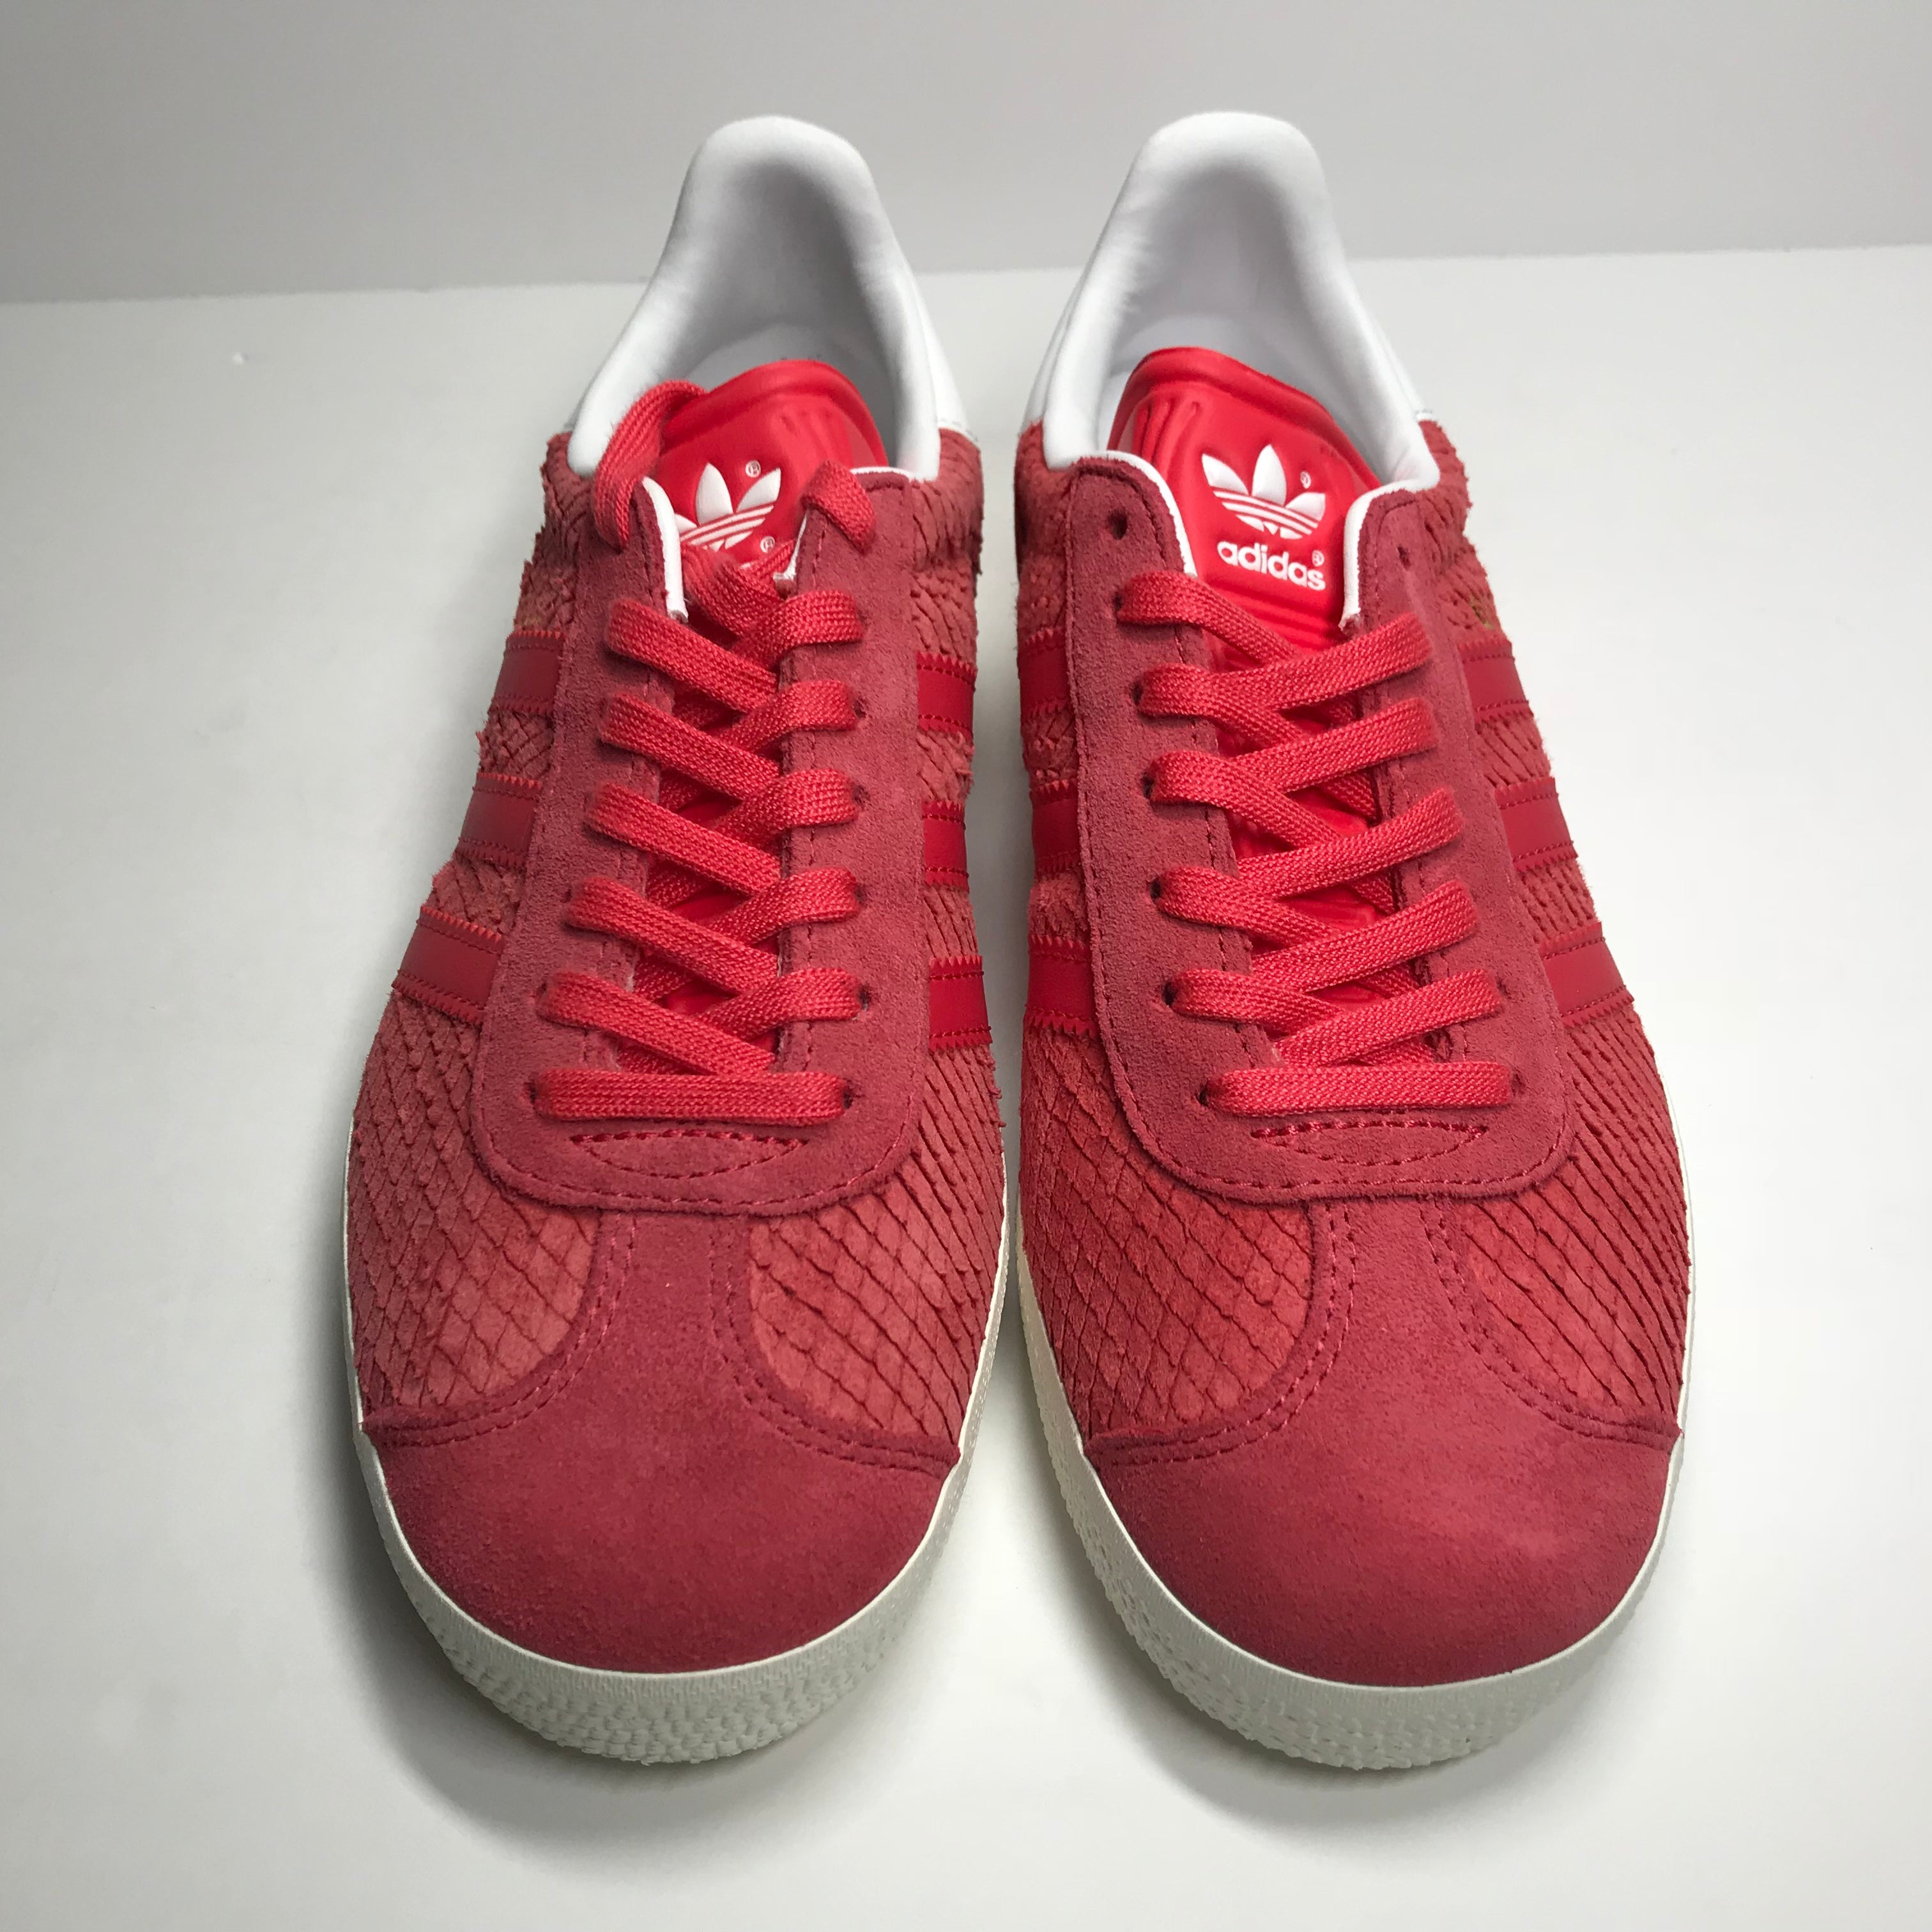 DS Women's Adidas Gazelle Coral Pink Size 5/Size 6 -